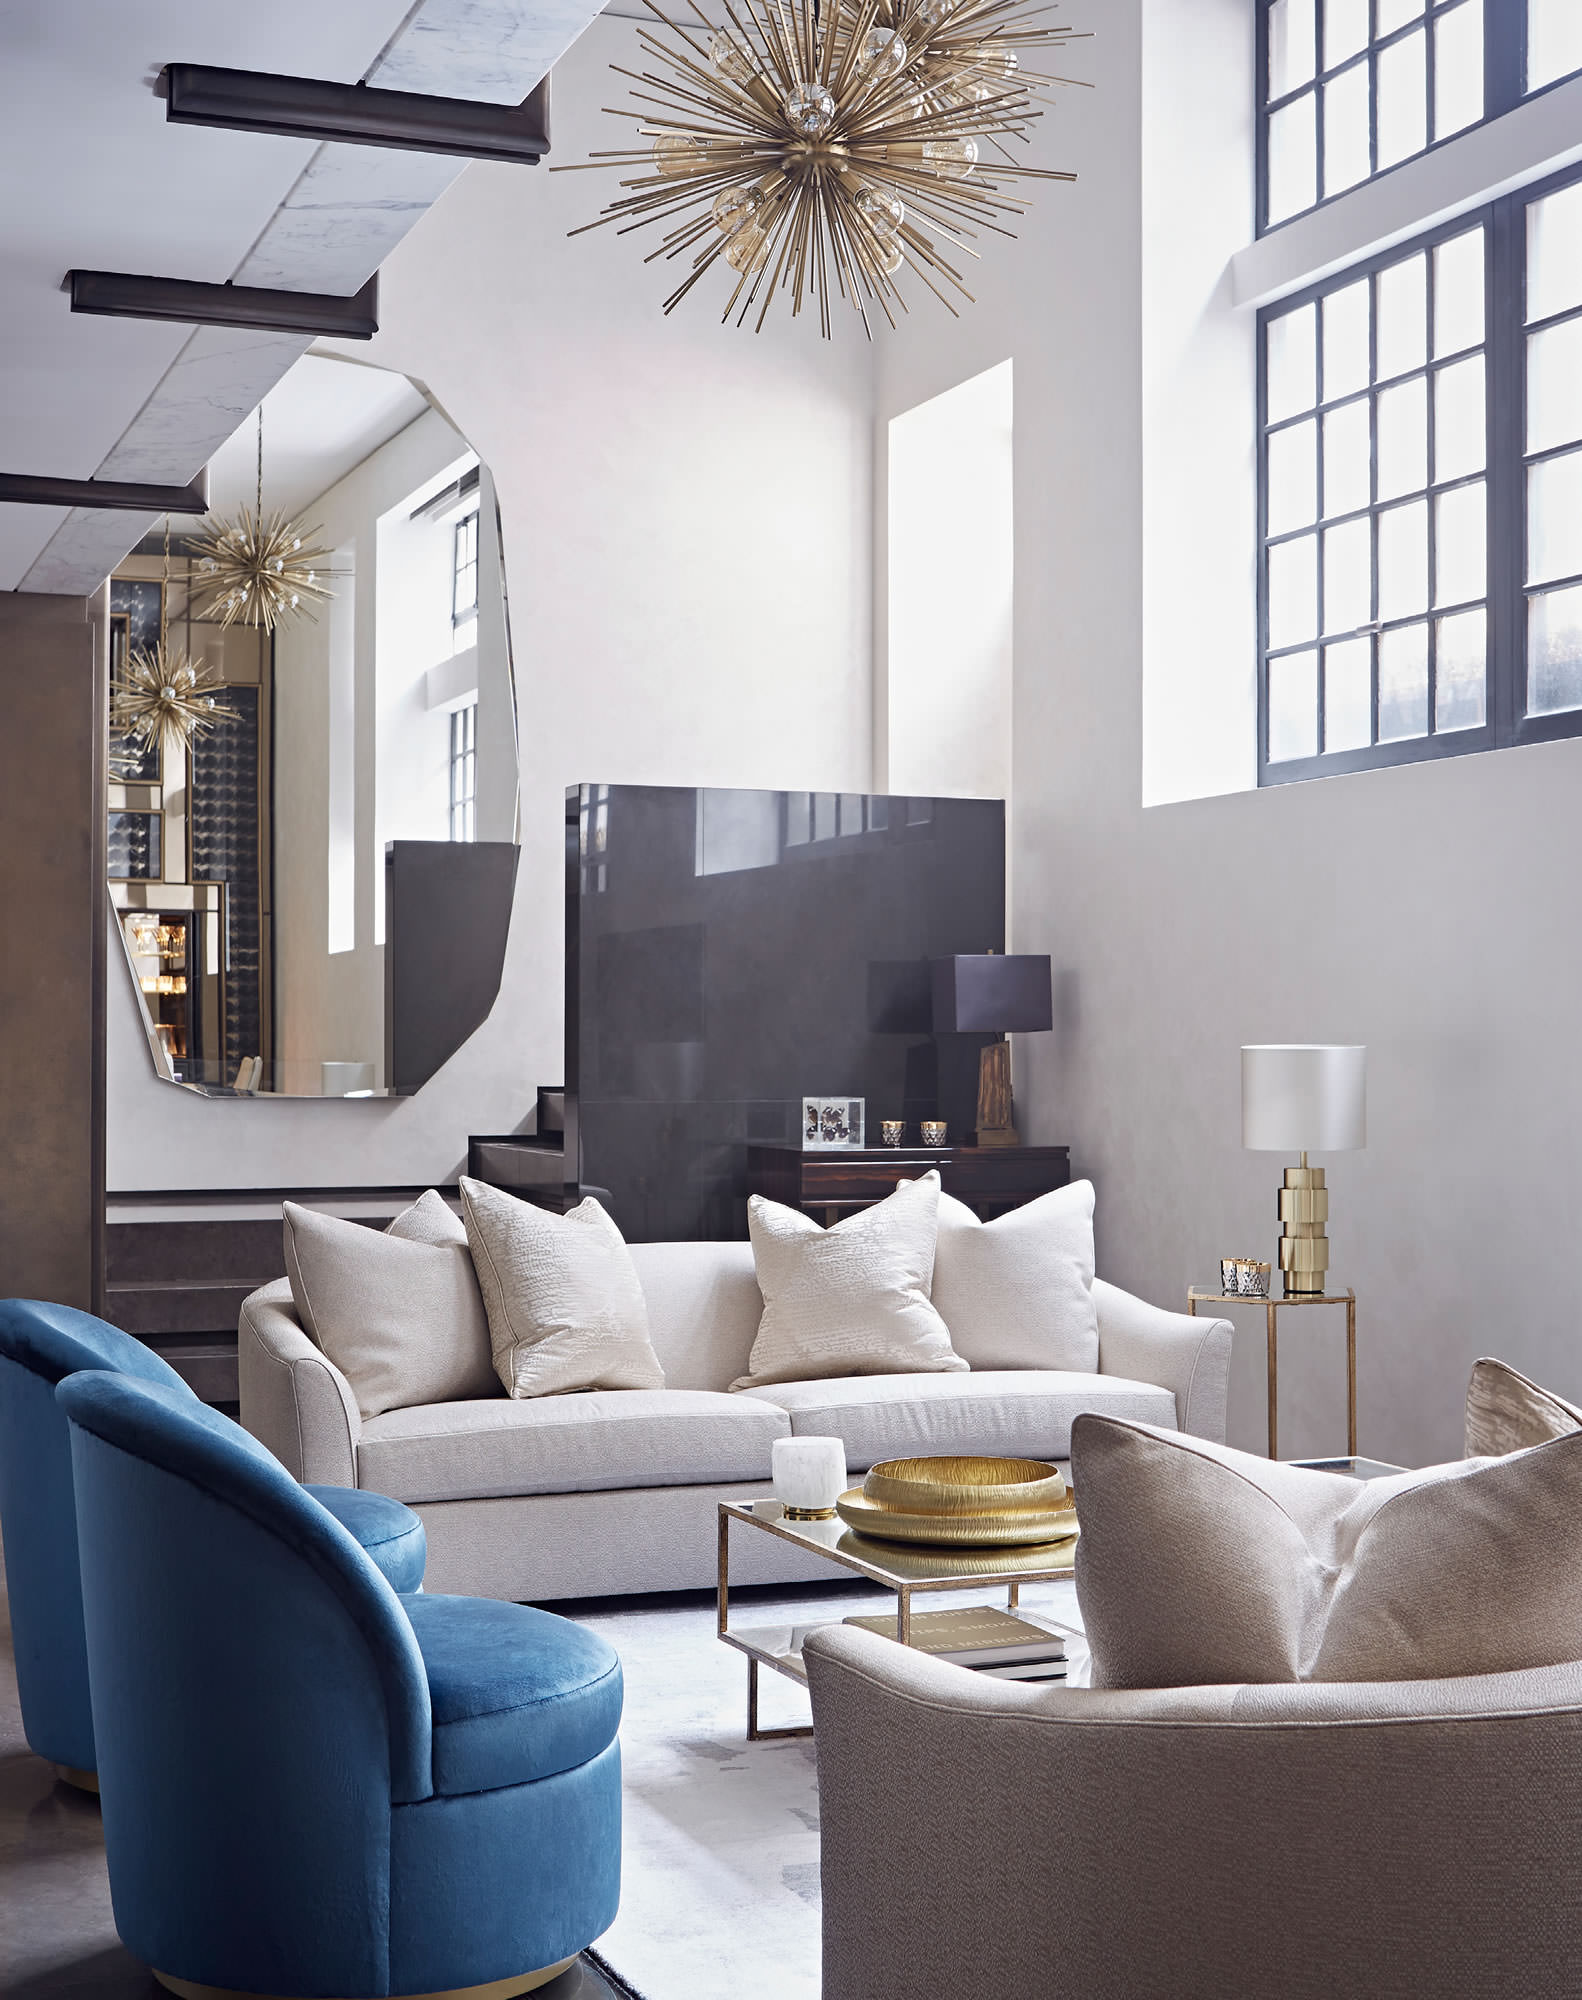 Superlative details bold use of colour balance and symmetry spaces infused with a quiet glamour these are the hallmarks of the taylor howes touch